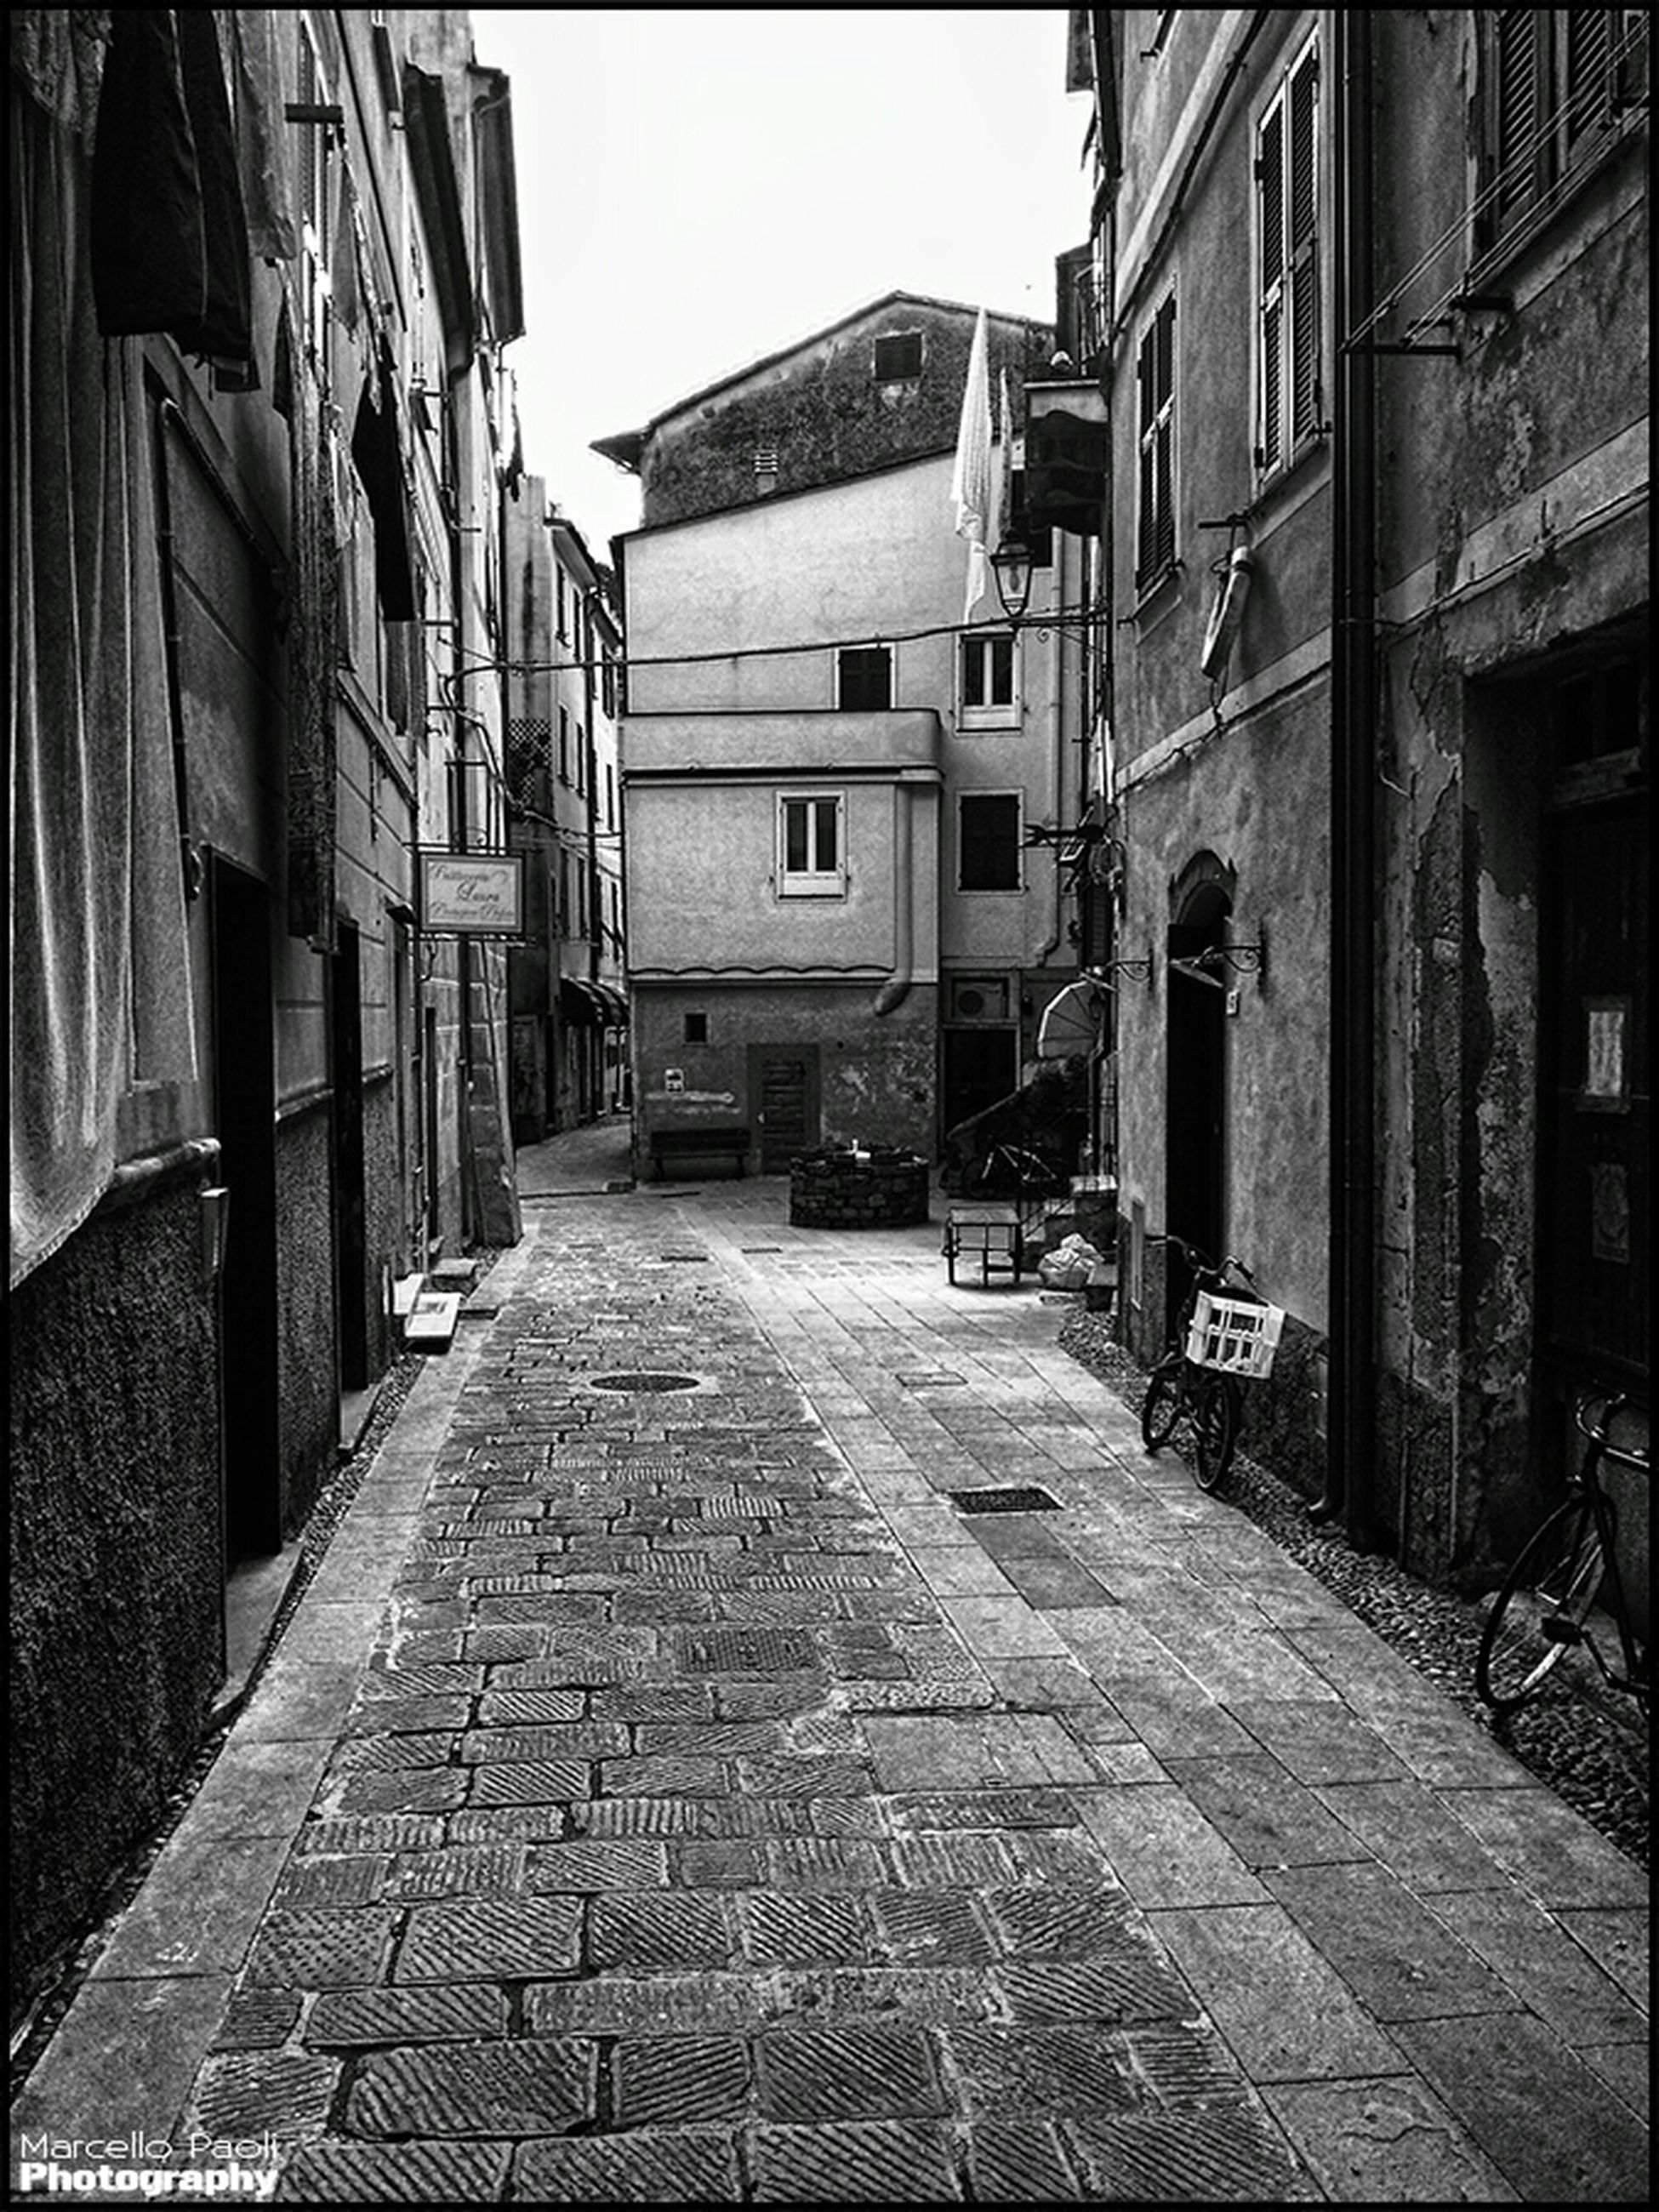 building exterior, architecture, built structure, the way forward, street, residential building, cobblestone, residential structure, diminishing perspective, city, building, alley, narrow, vanishing point, empty, house, town, walkway, residential district, clear sky